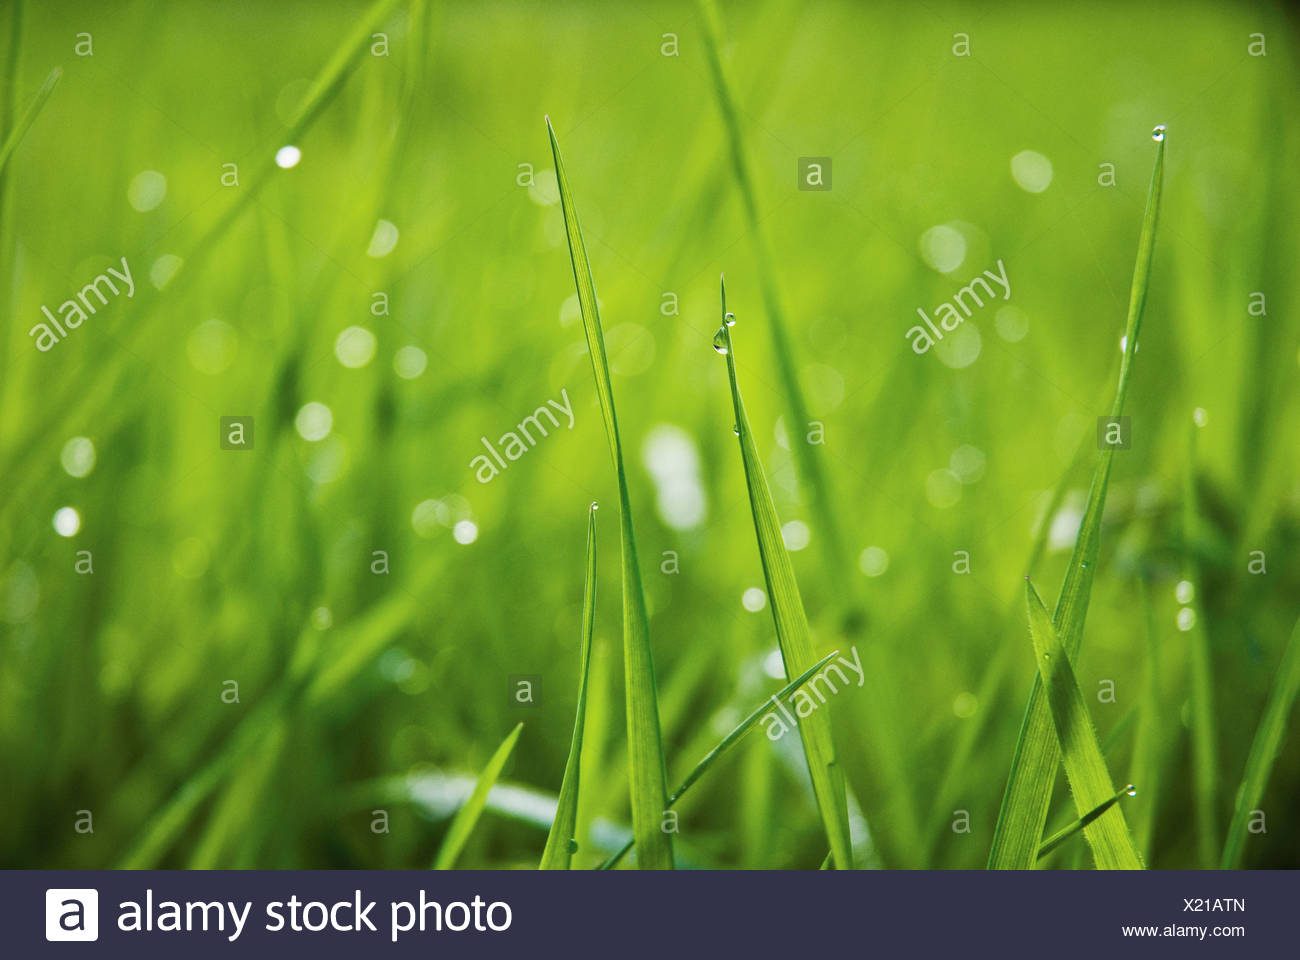 Grass close up at ground level with water droplets on the green blades. - Stock Image